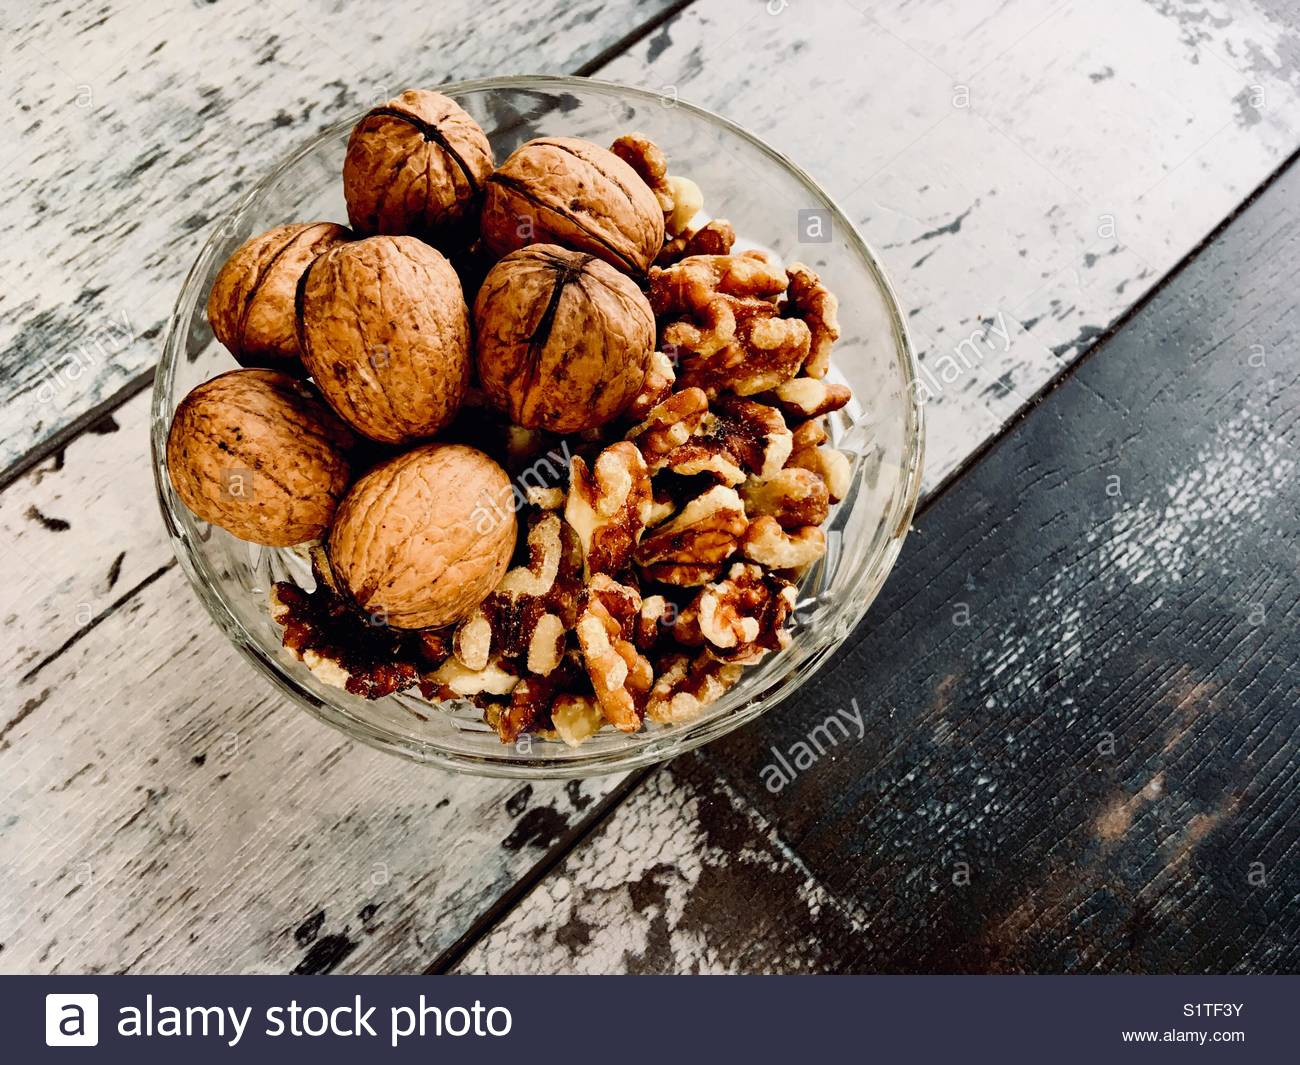 Walnuts presented in a glass bowl Stock Photo